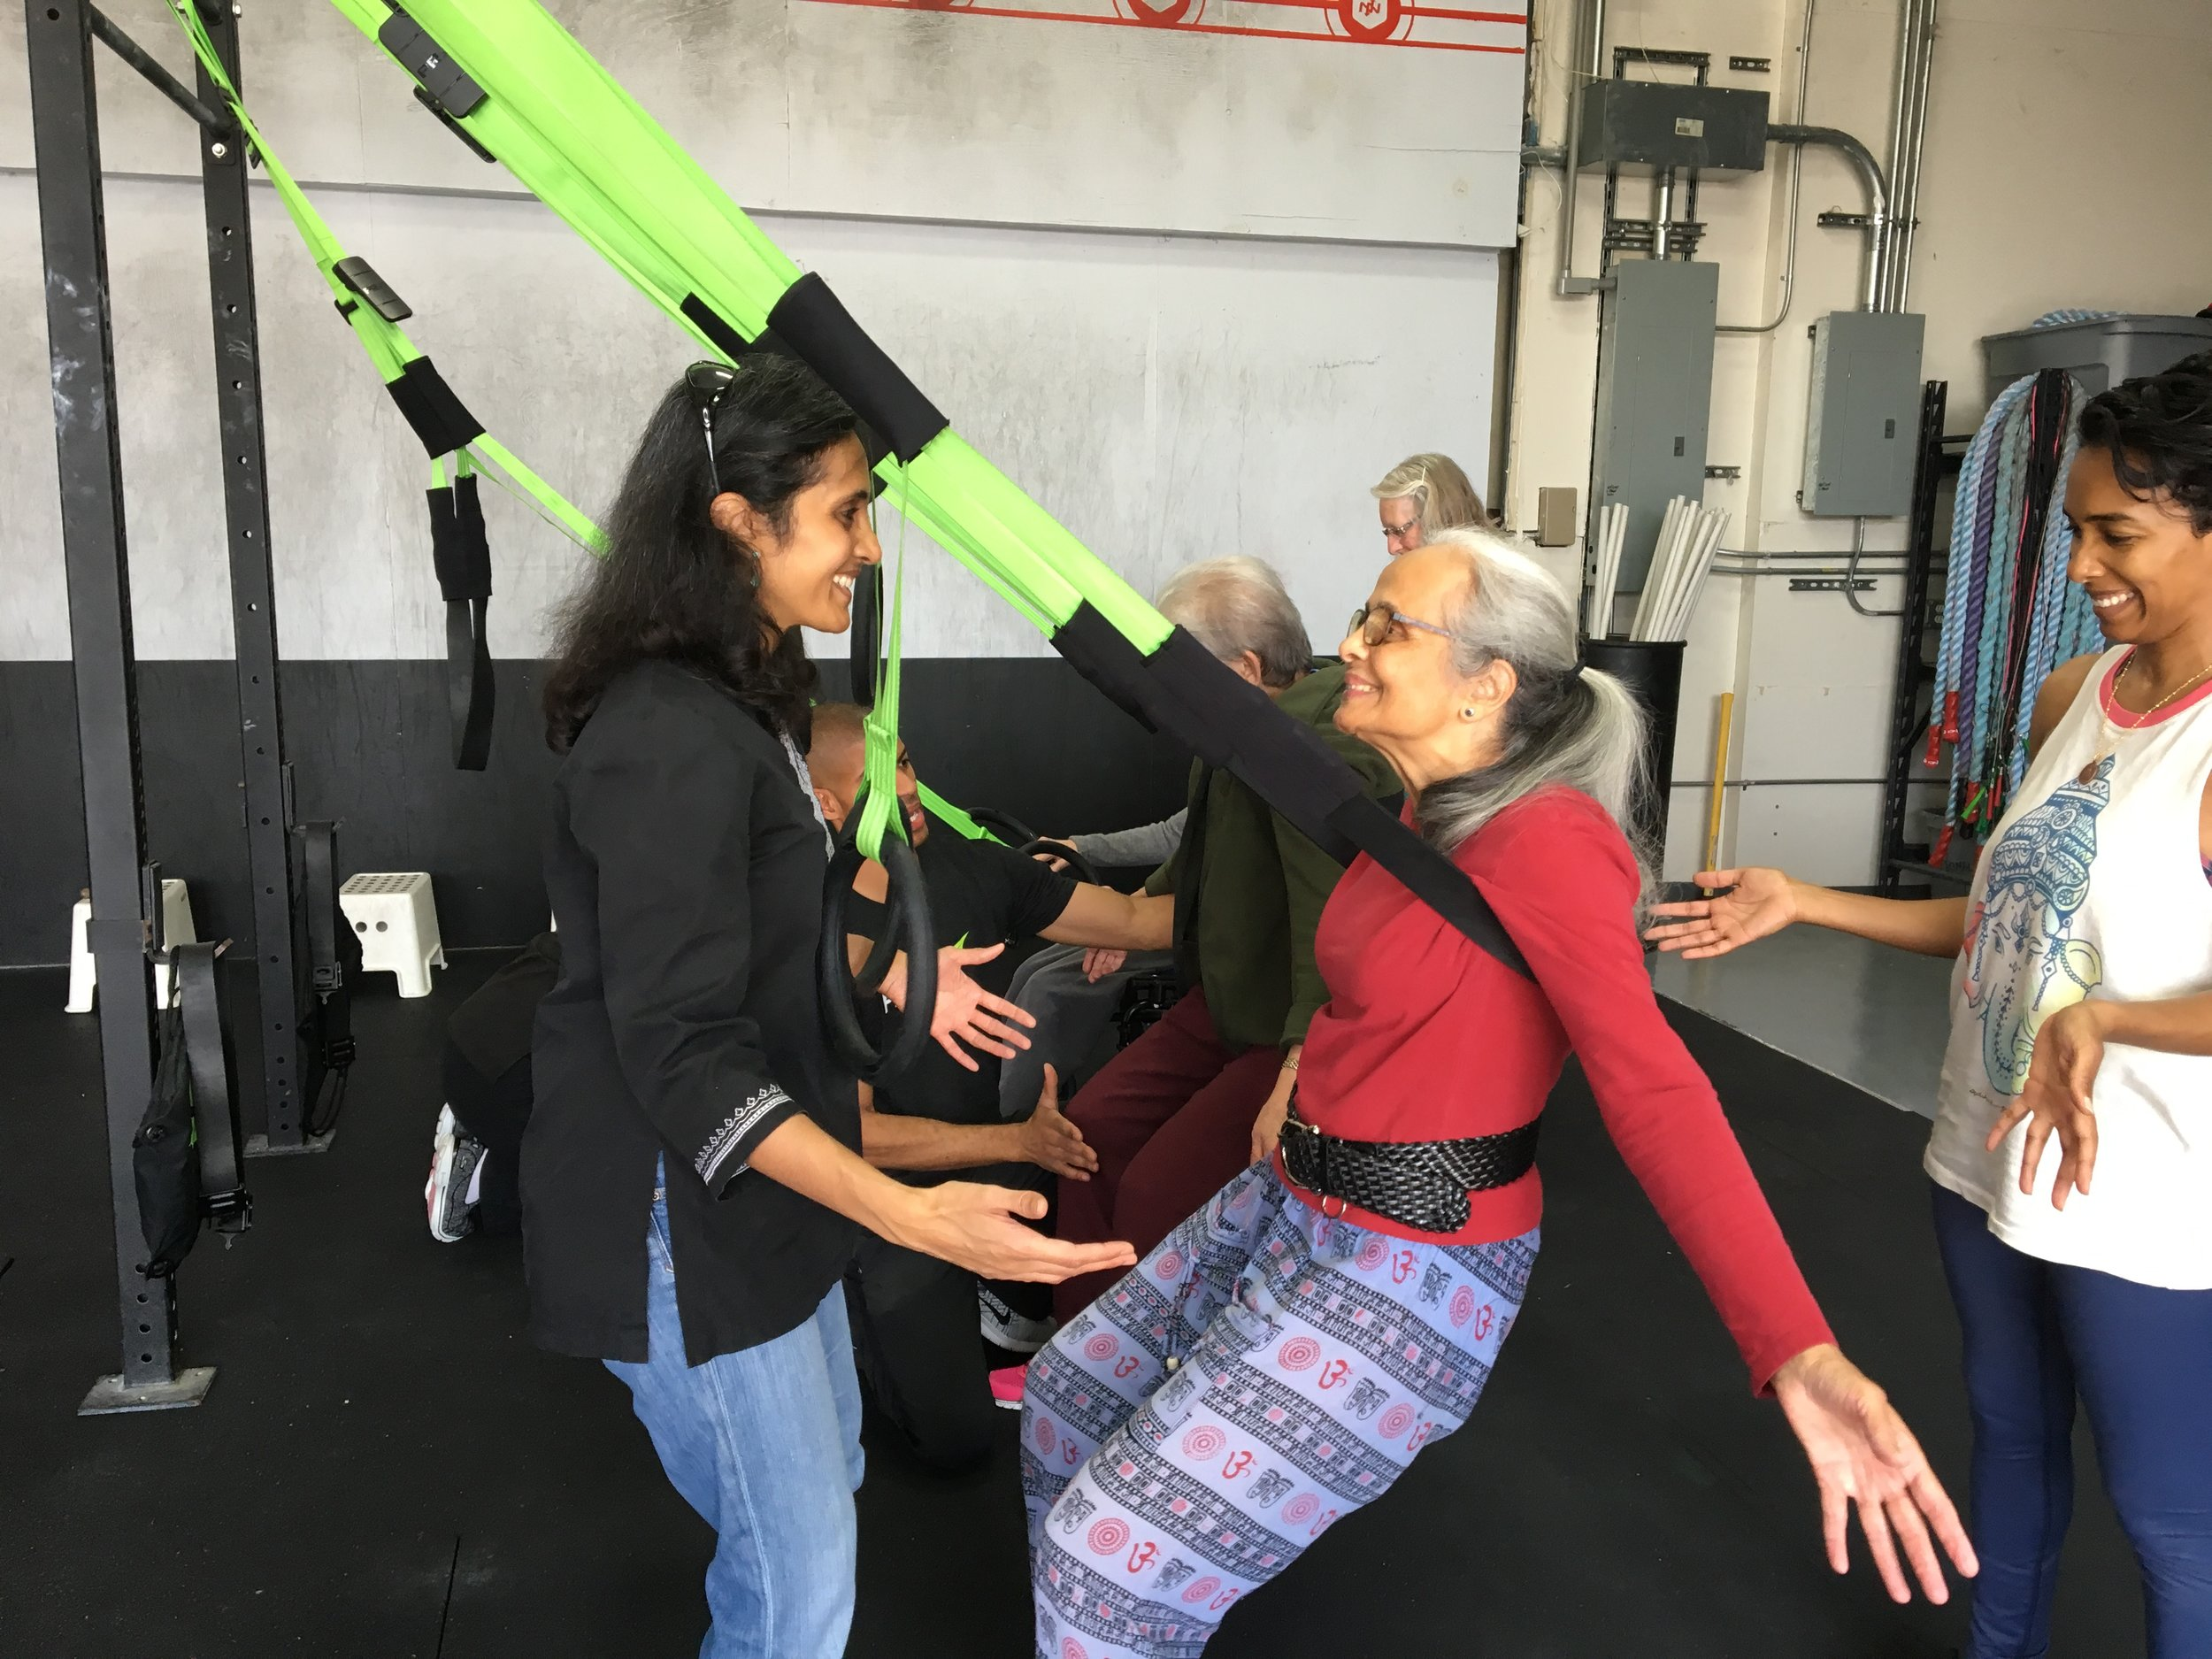 Supervision and feedback is critical for potent results! Here is one of our Power for Parkinson's participants working hard in the Primal 7 unit.